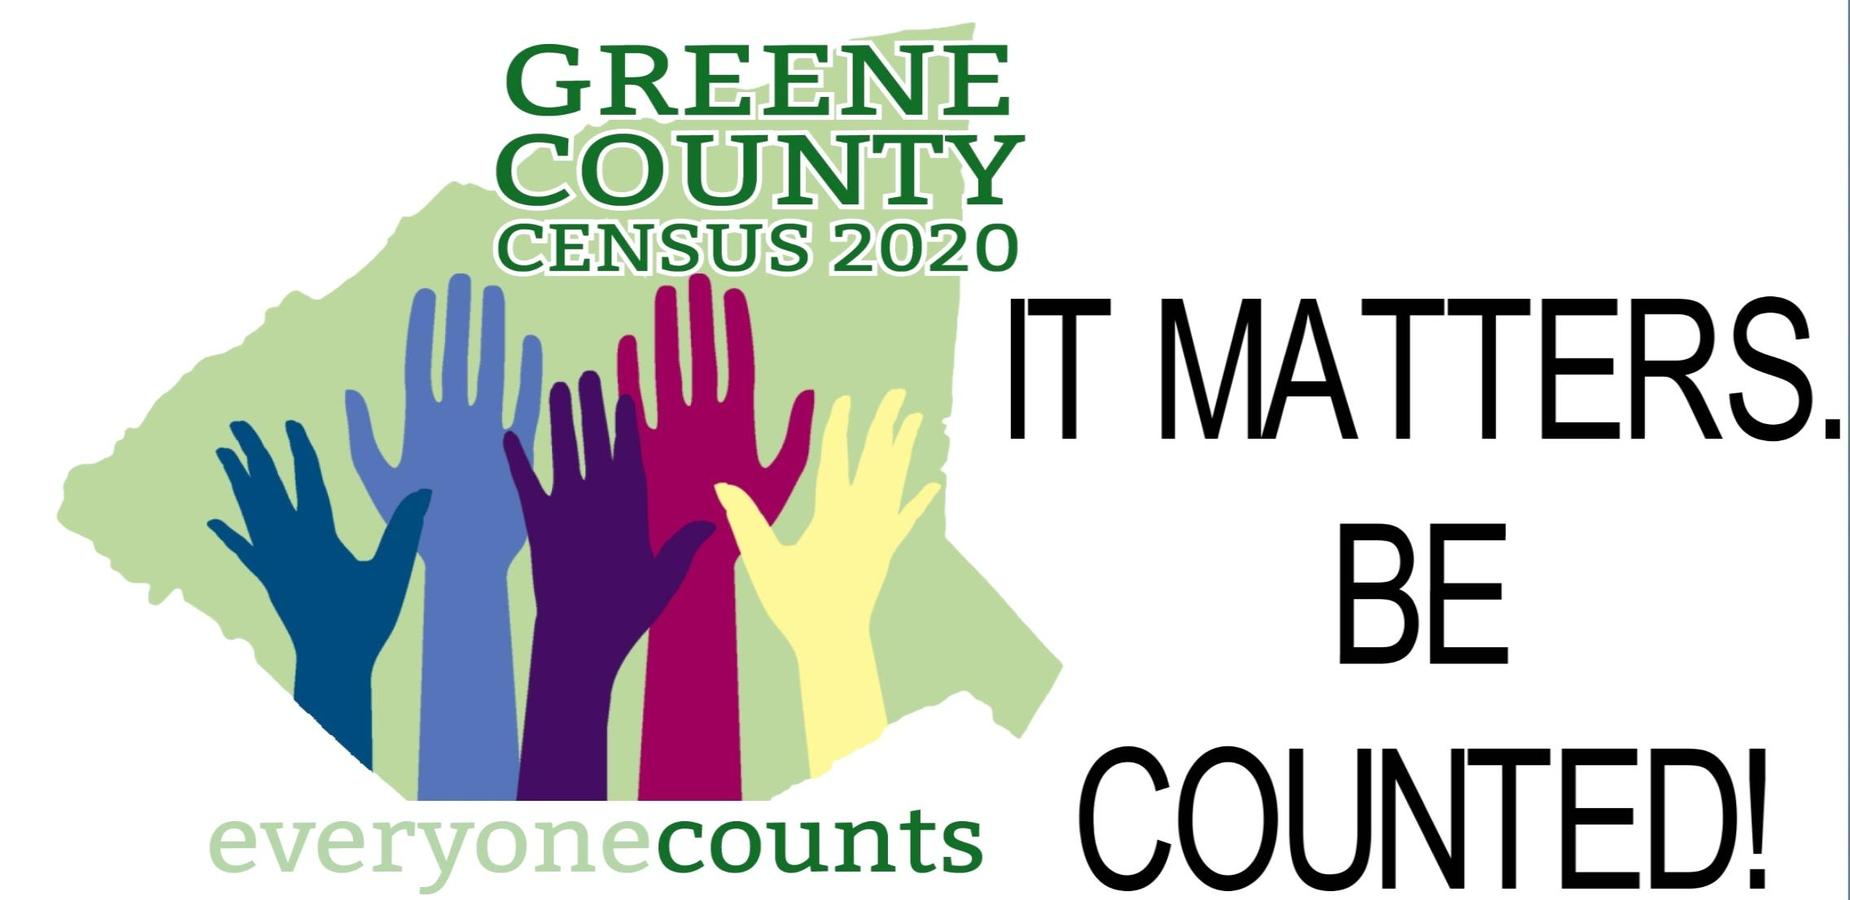 Census 2020- be counted!